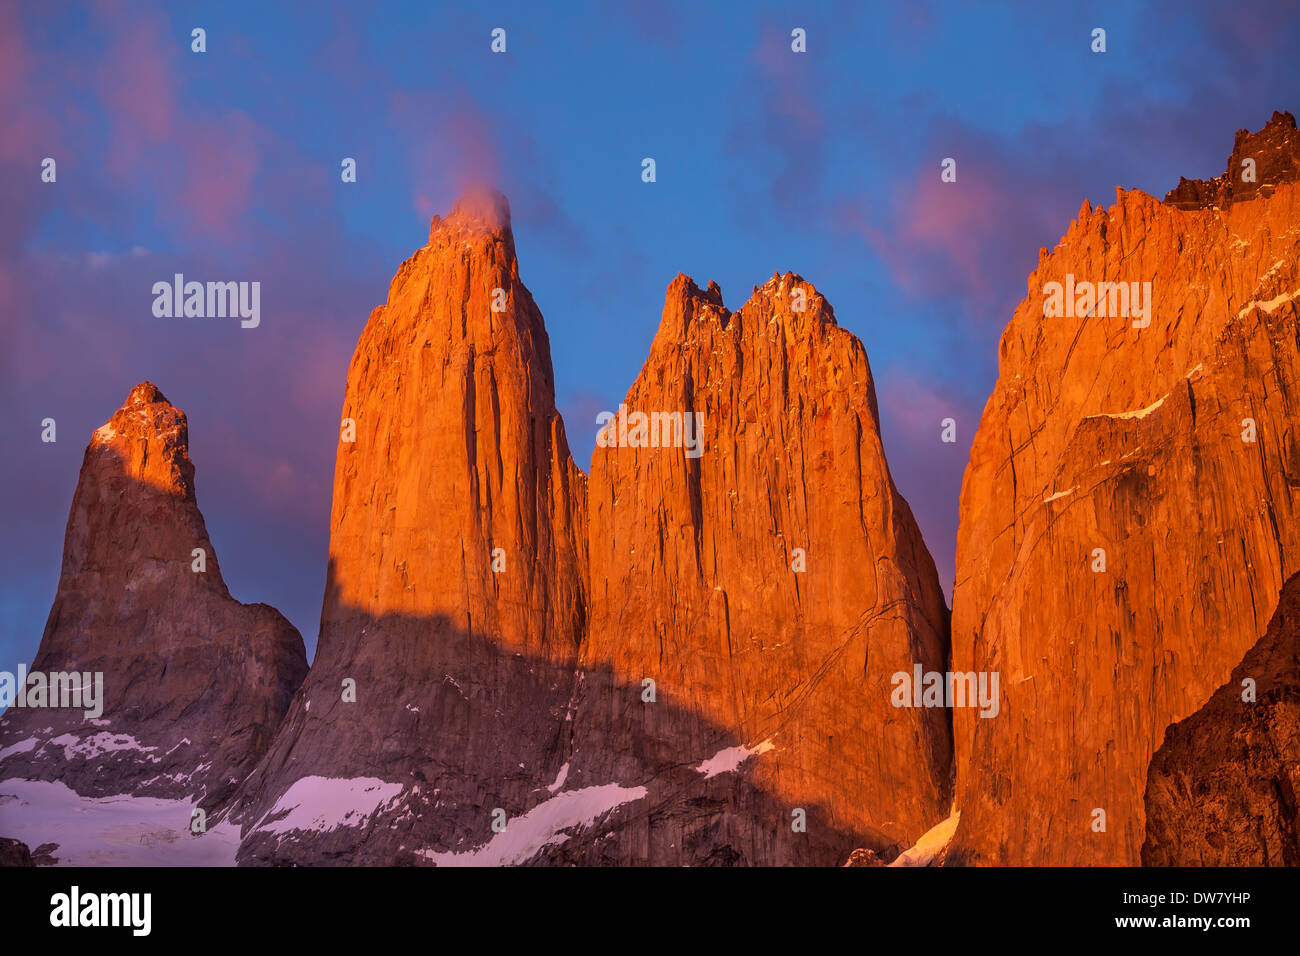 Towers at sunrise, Torres del Paine National Park, Patagonia, Chile - Stock Image